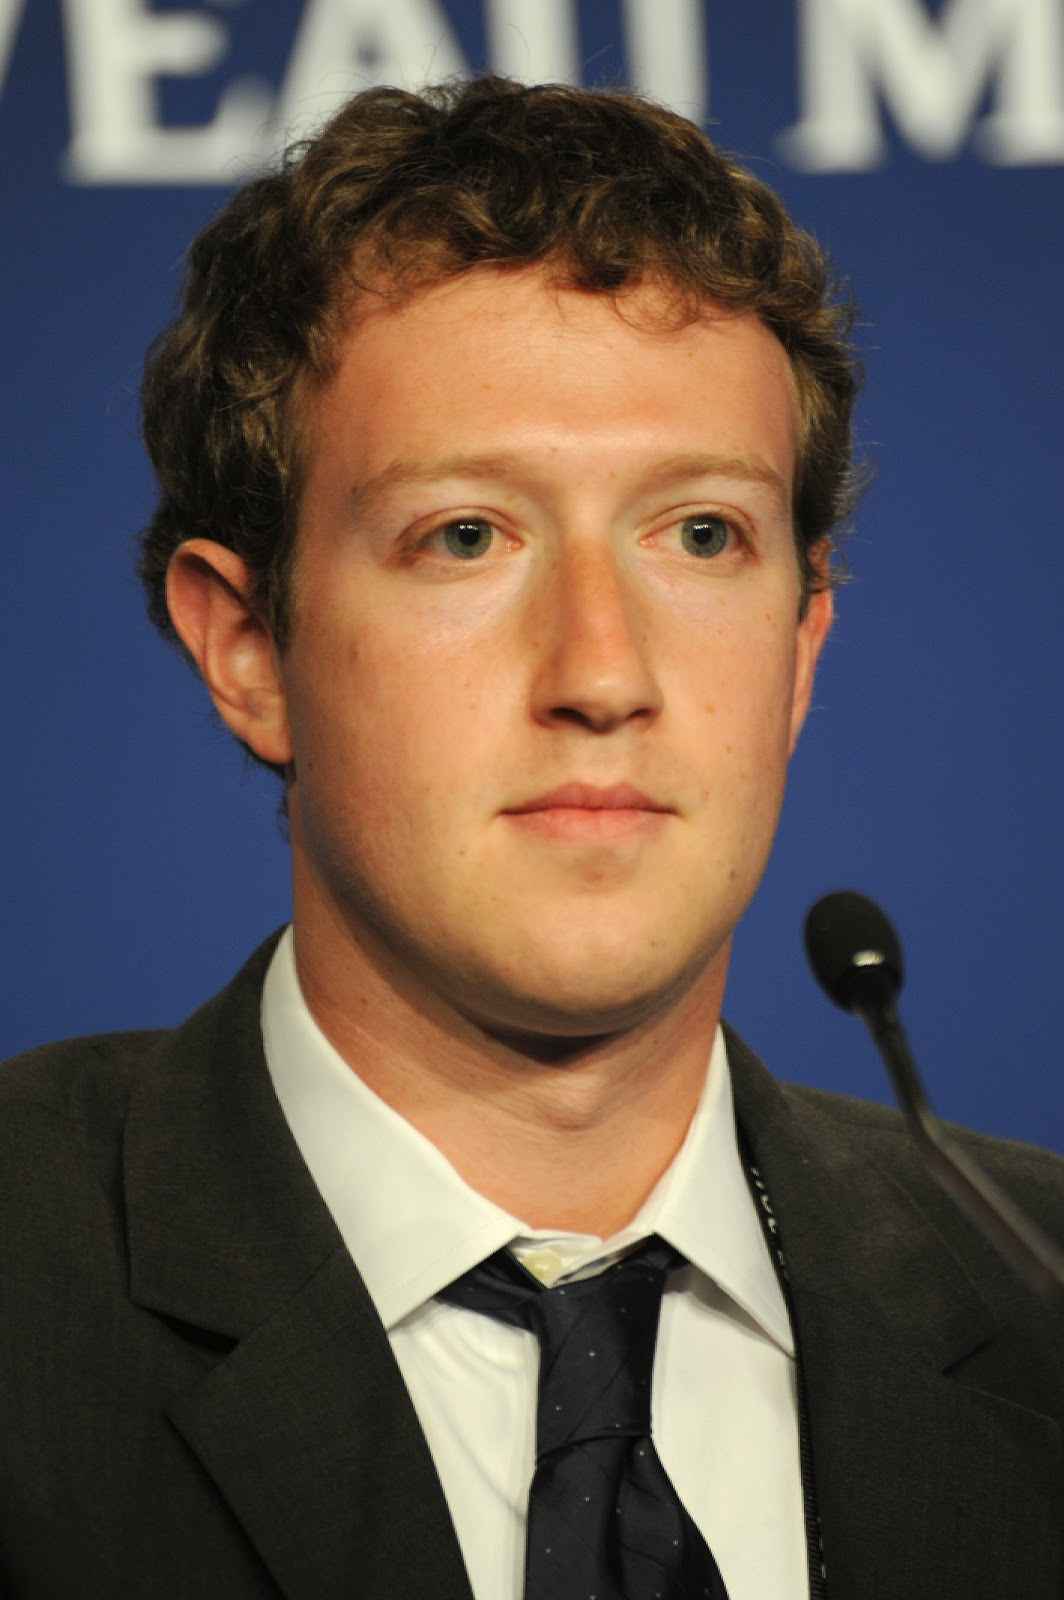 mark_zuckerberg_net_worth